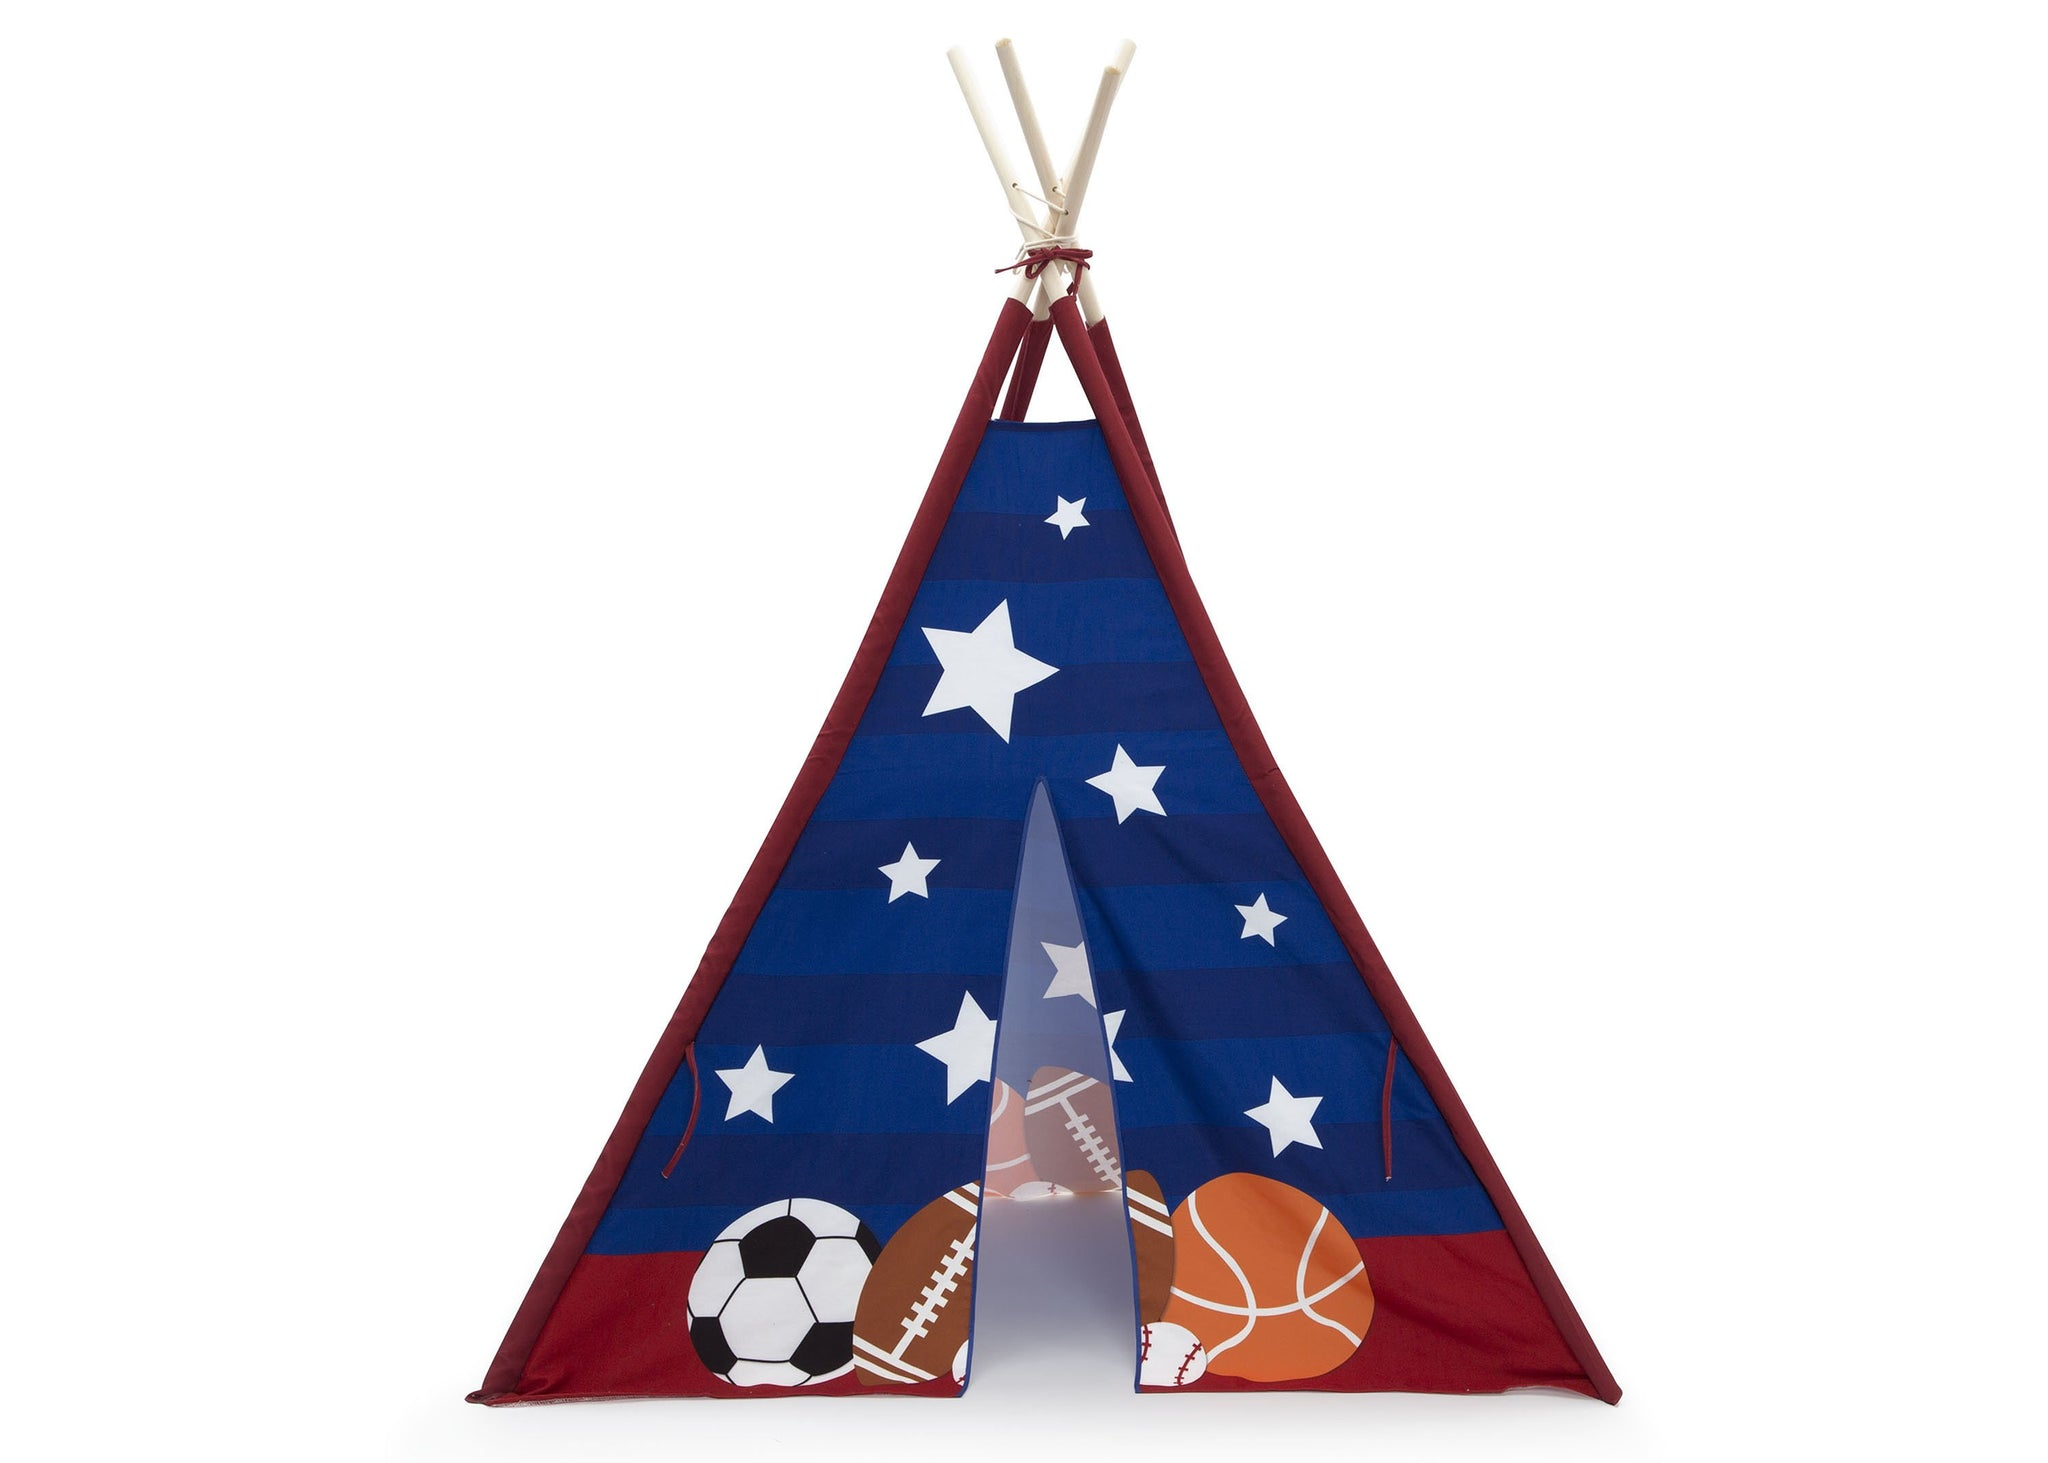 Delta Children All-Star Sports (999) Teepee Play Tent for Kids, Front Silo View